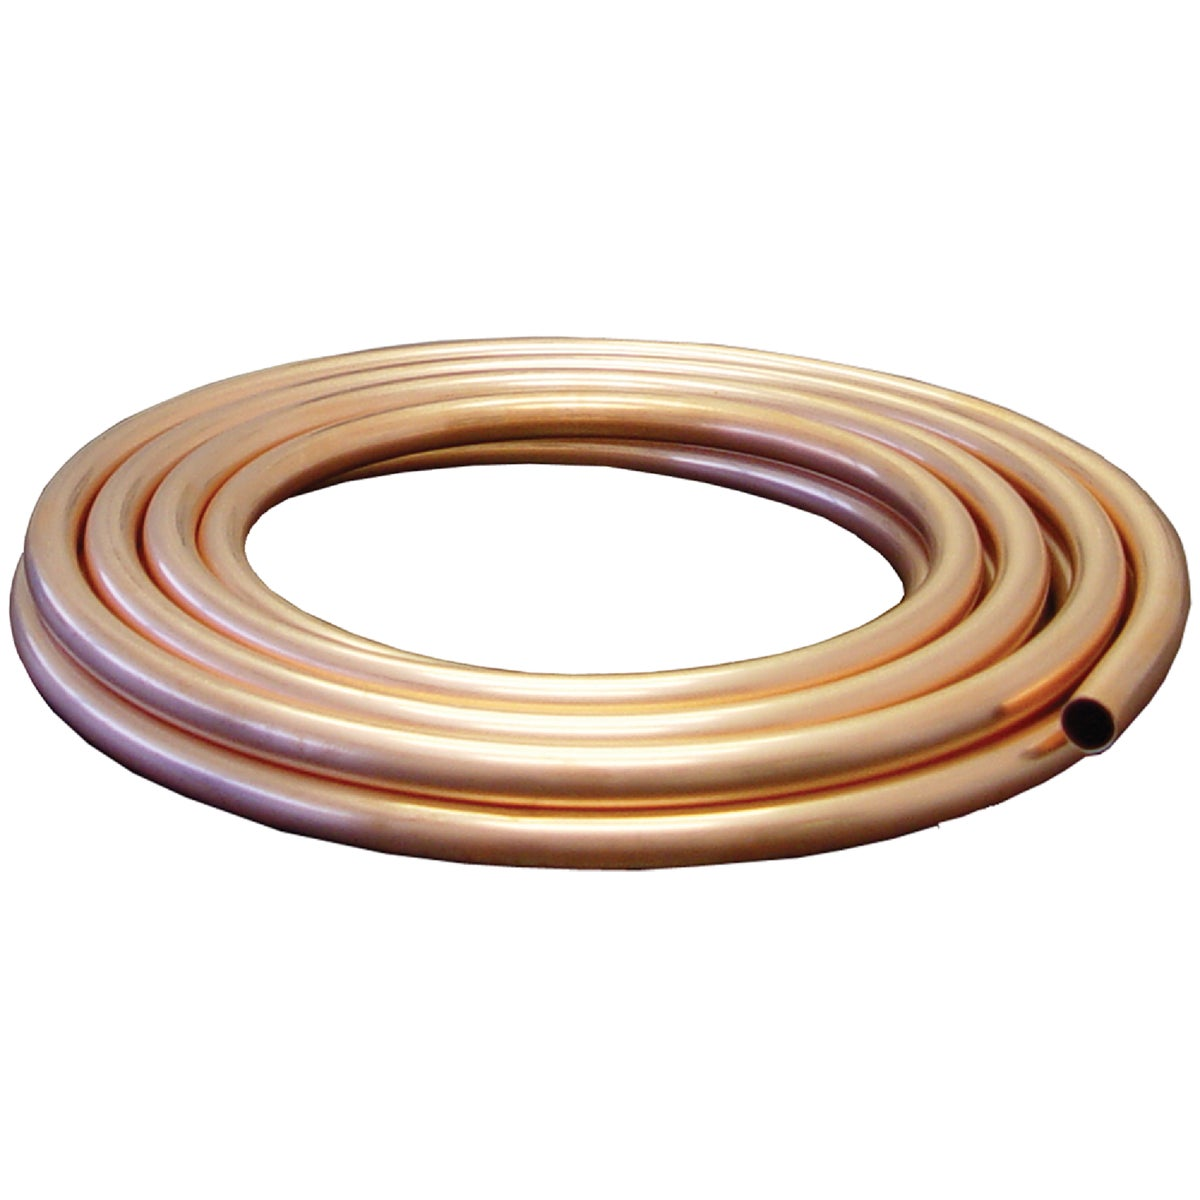 "5/8""ODX10'UG COPPER COIL - UT10010 by Mueller B K"